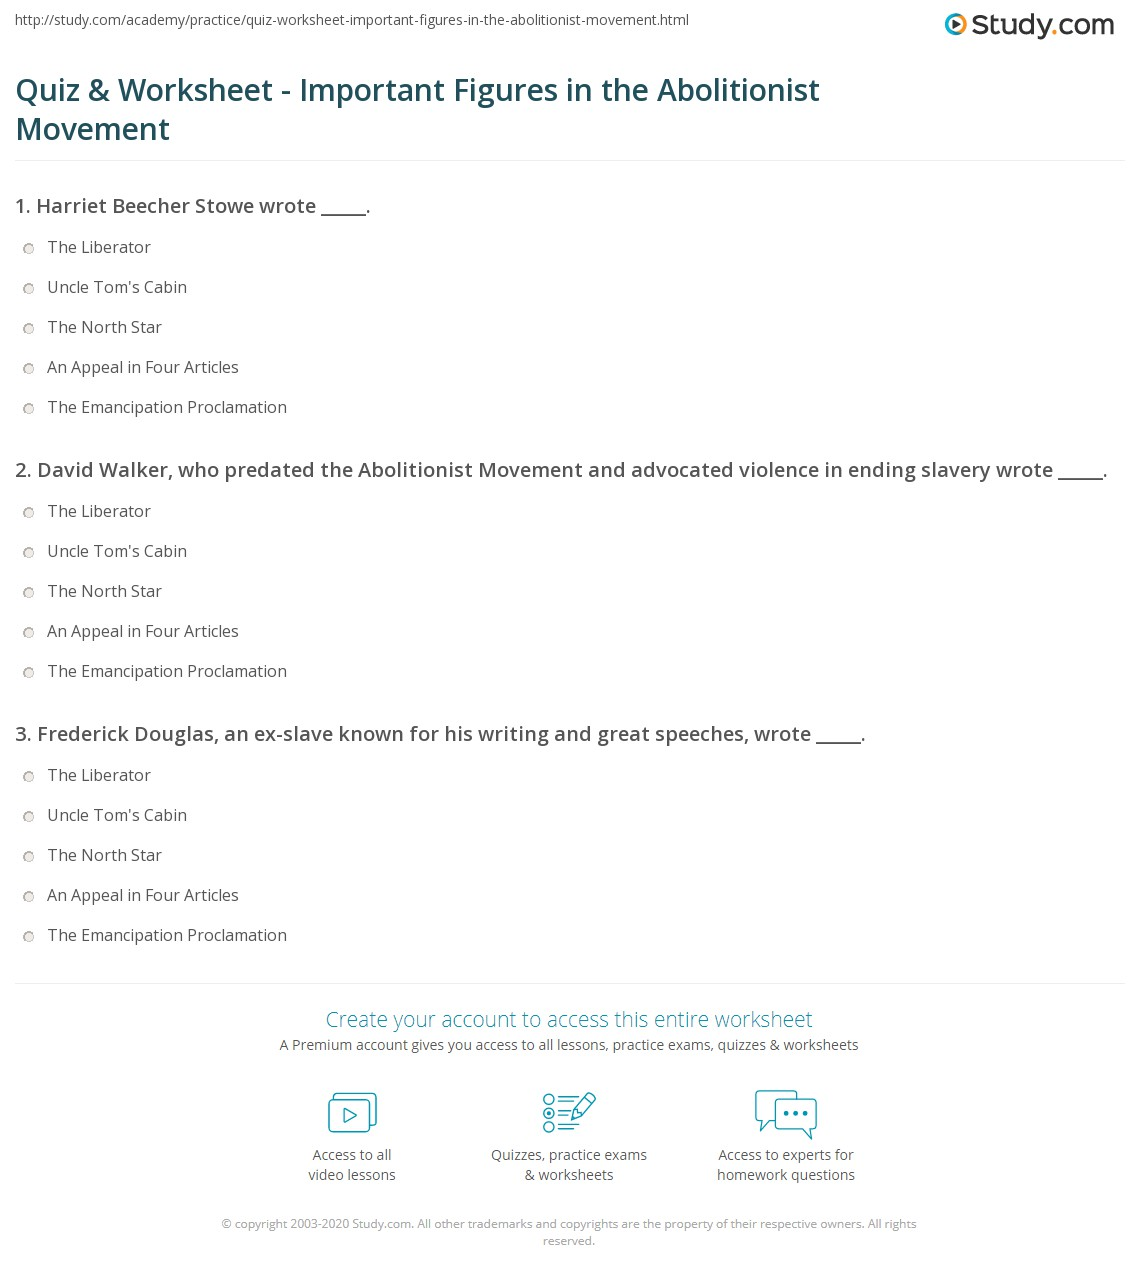 Quiz Worksheet Important Figures In The Abolitionist Movement Study Com